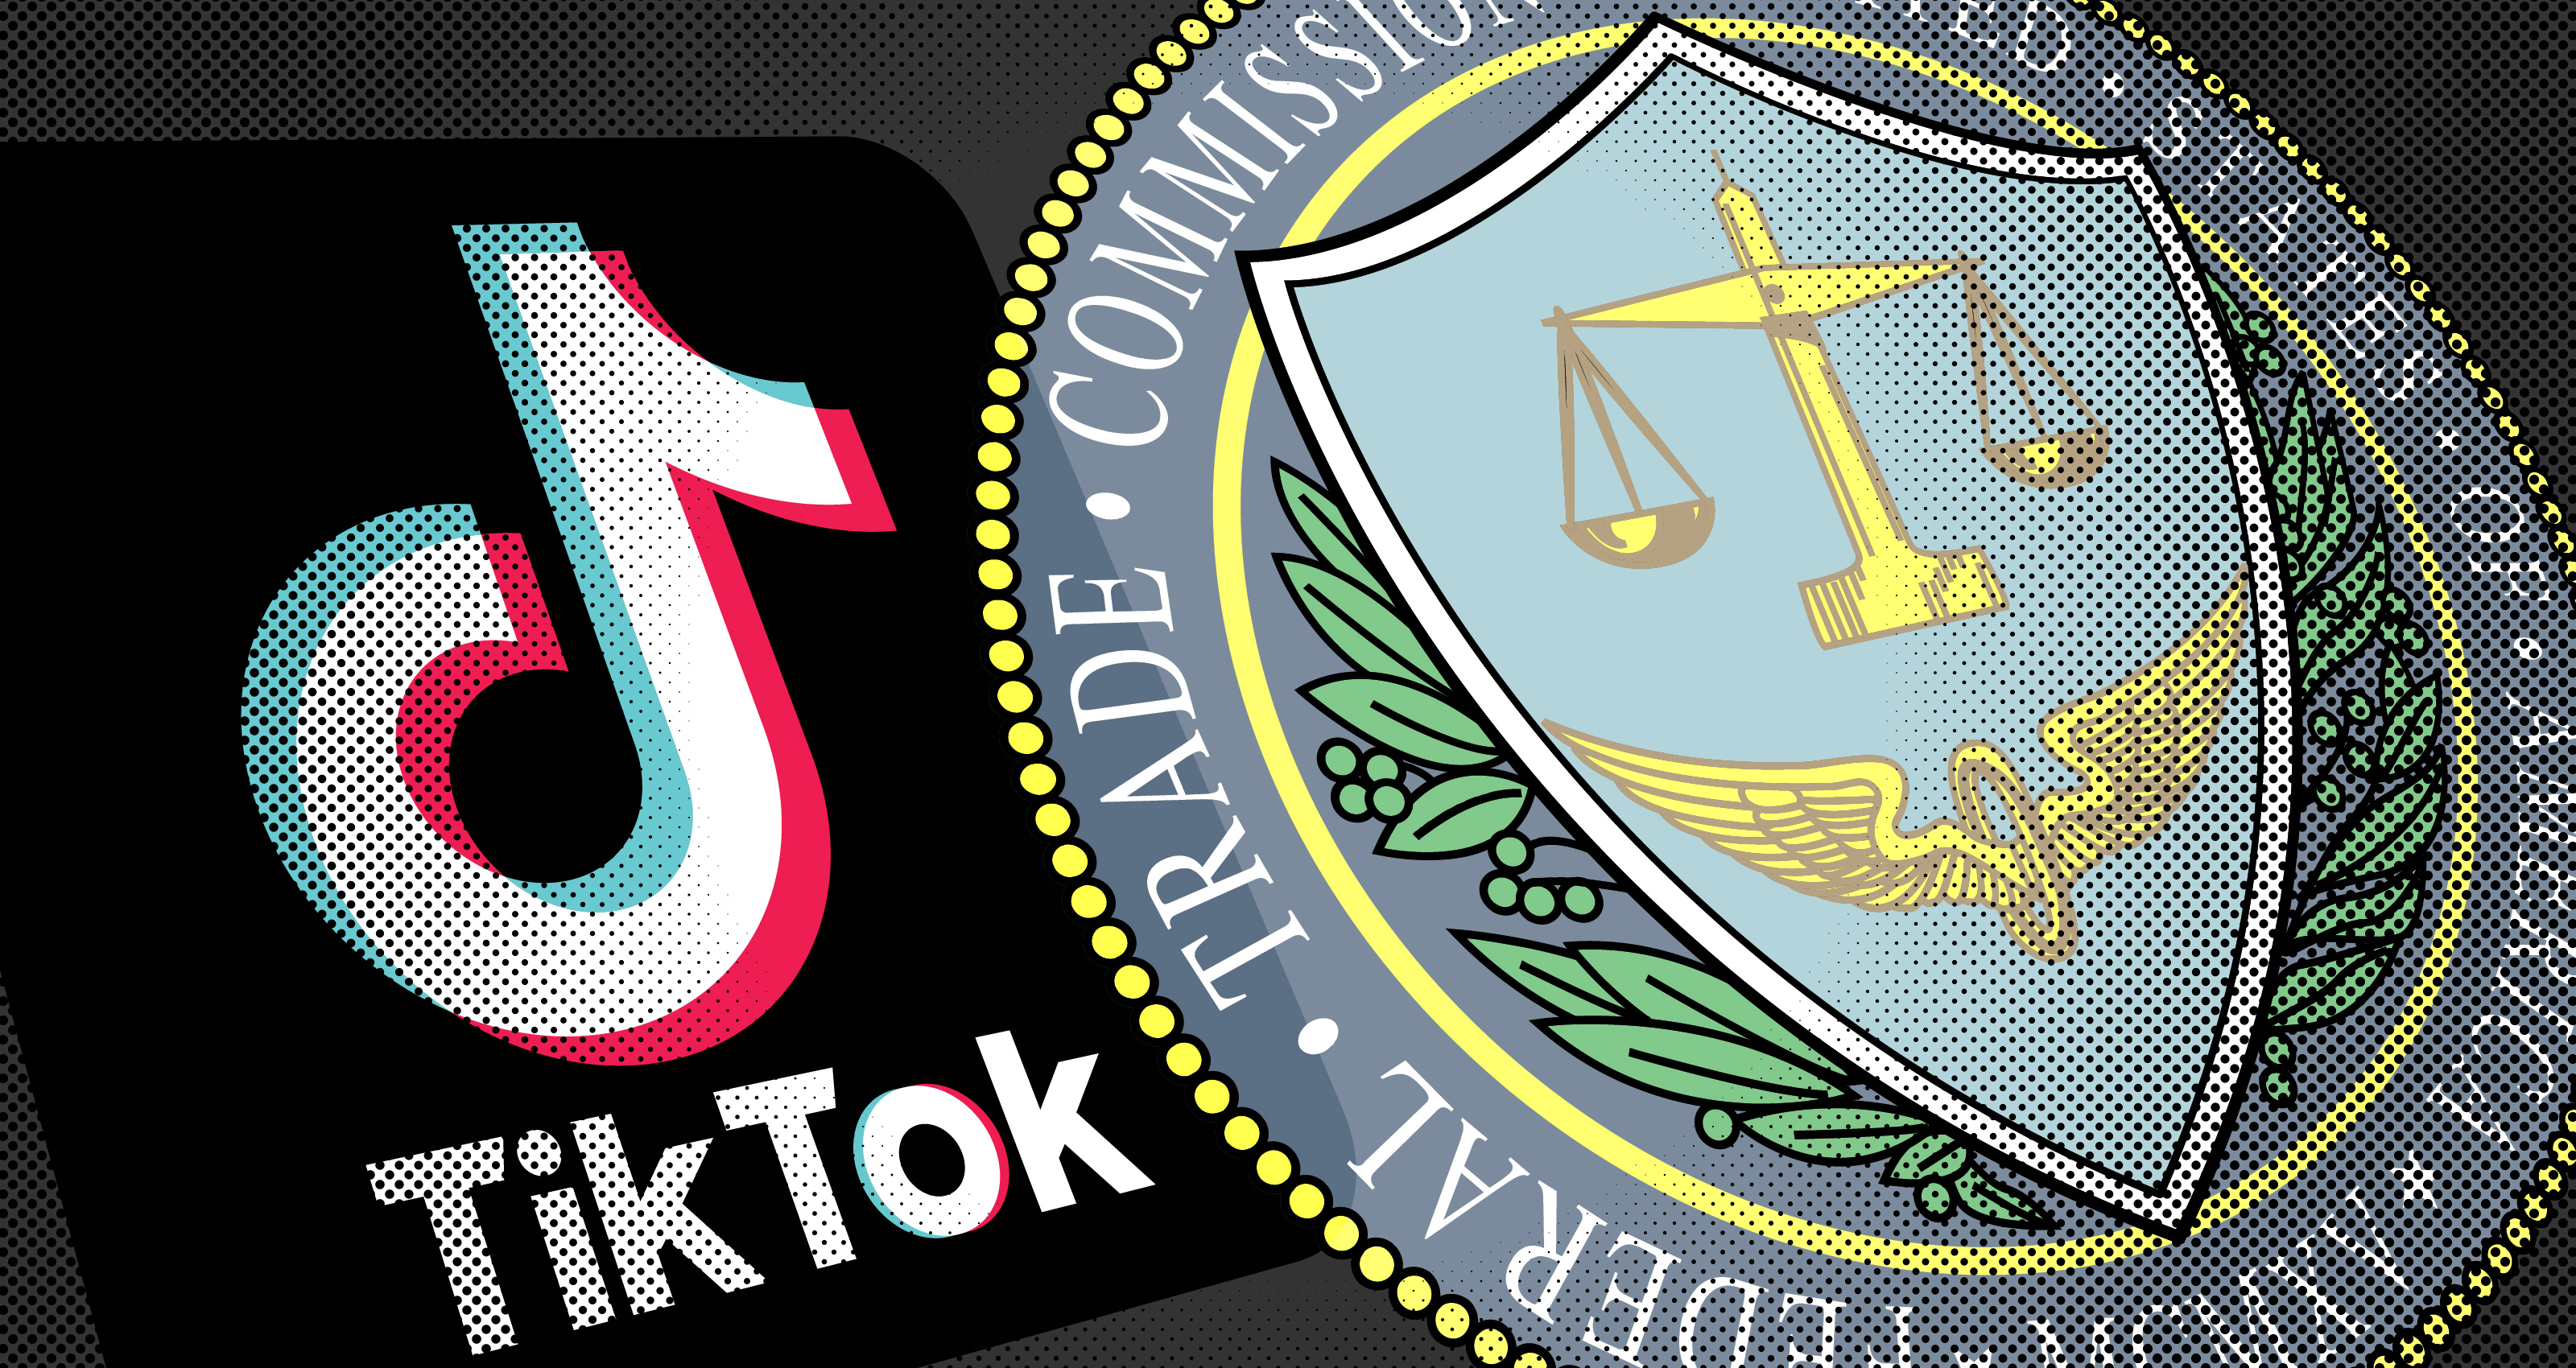 FTC ruling sees Musical ly (TikTok) fined $5 7M for violating